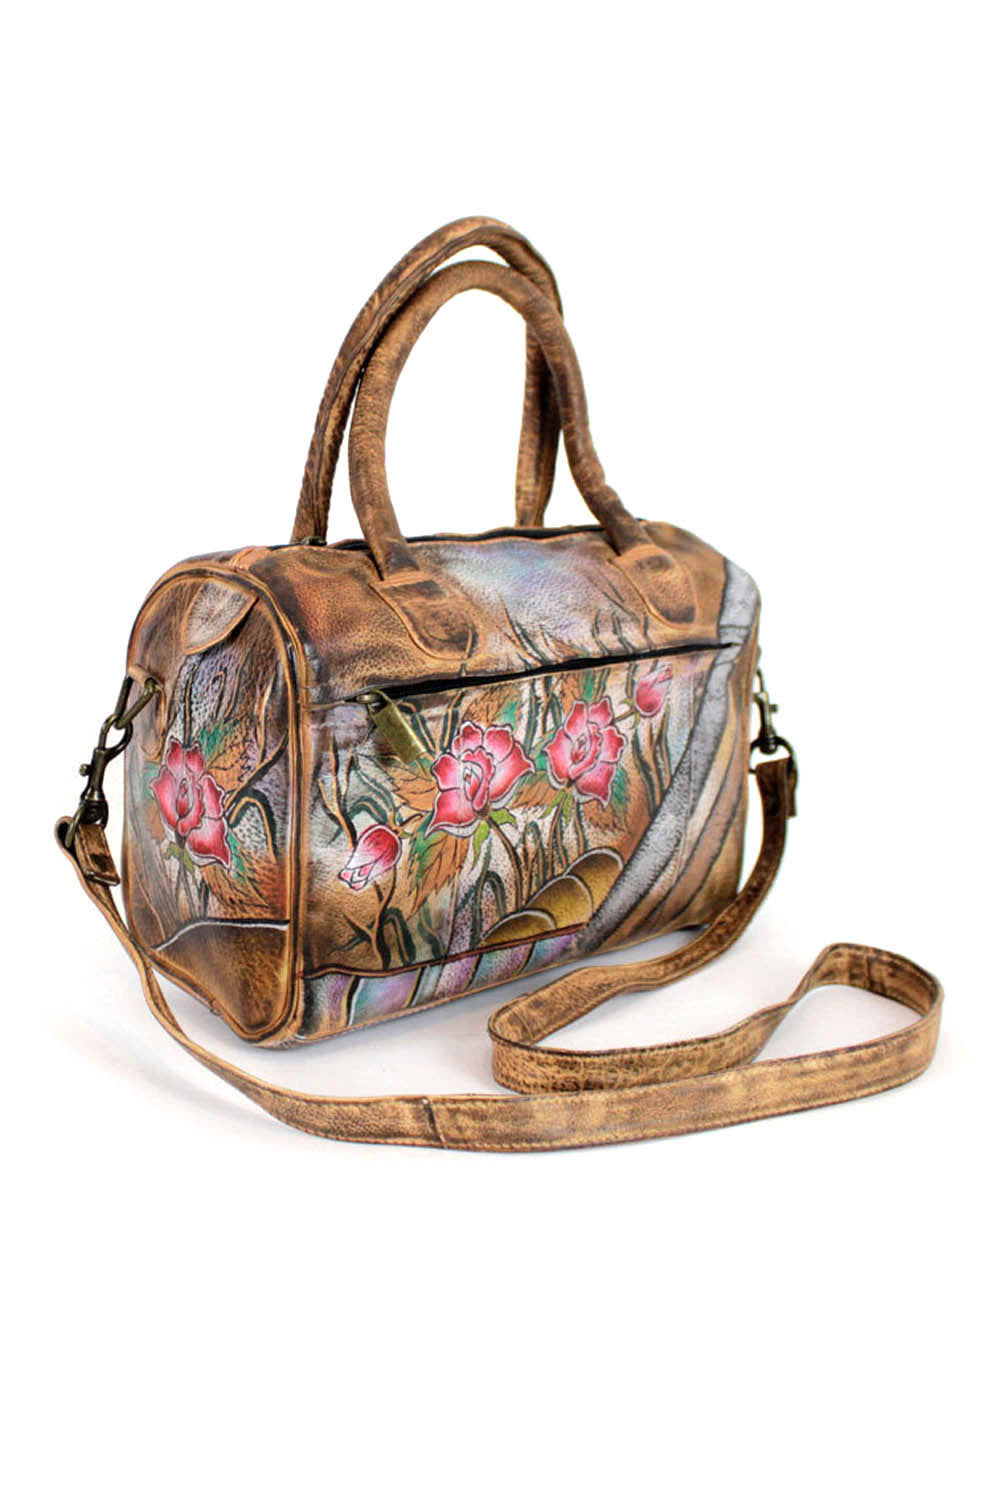 floral painted leather handbags